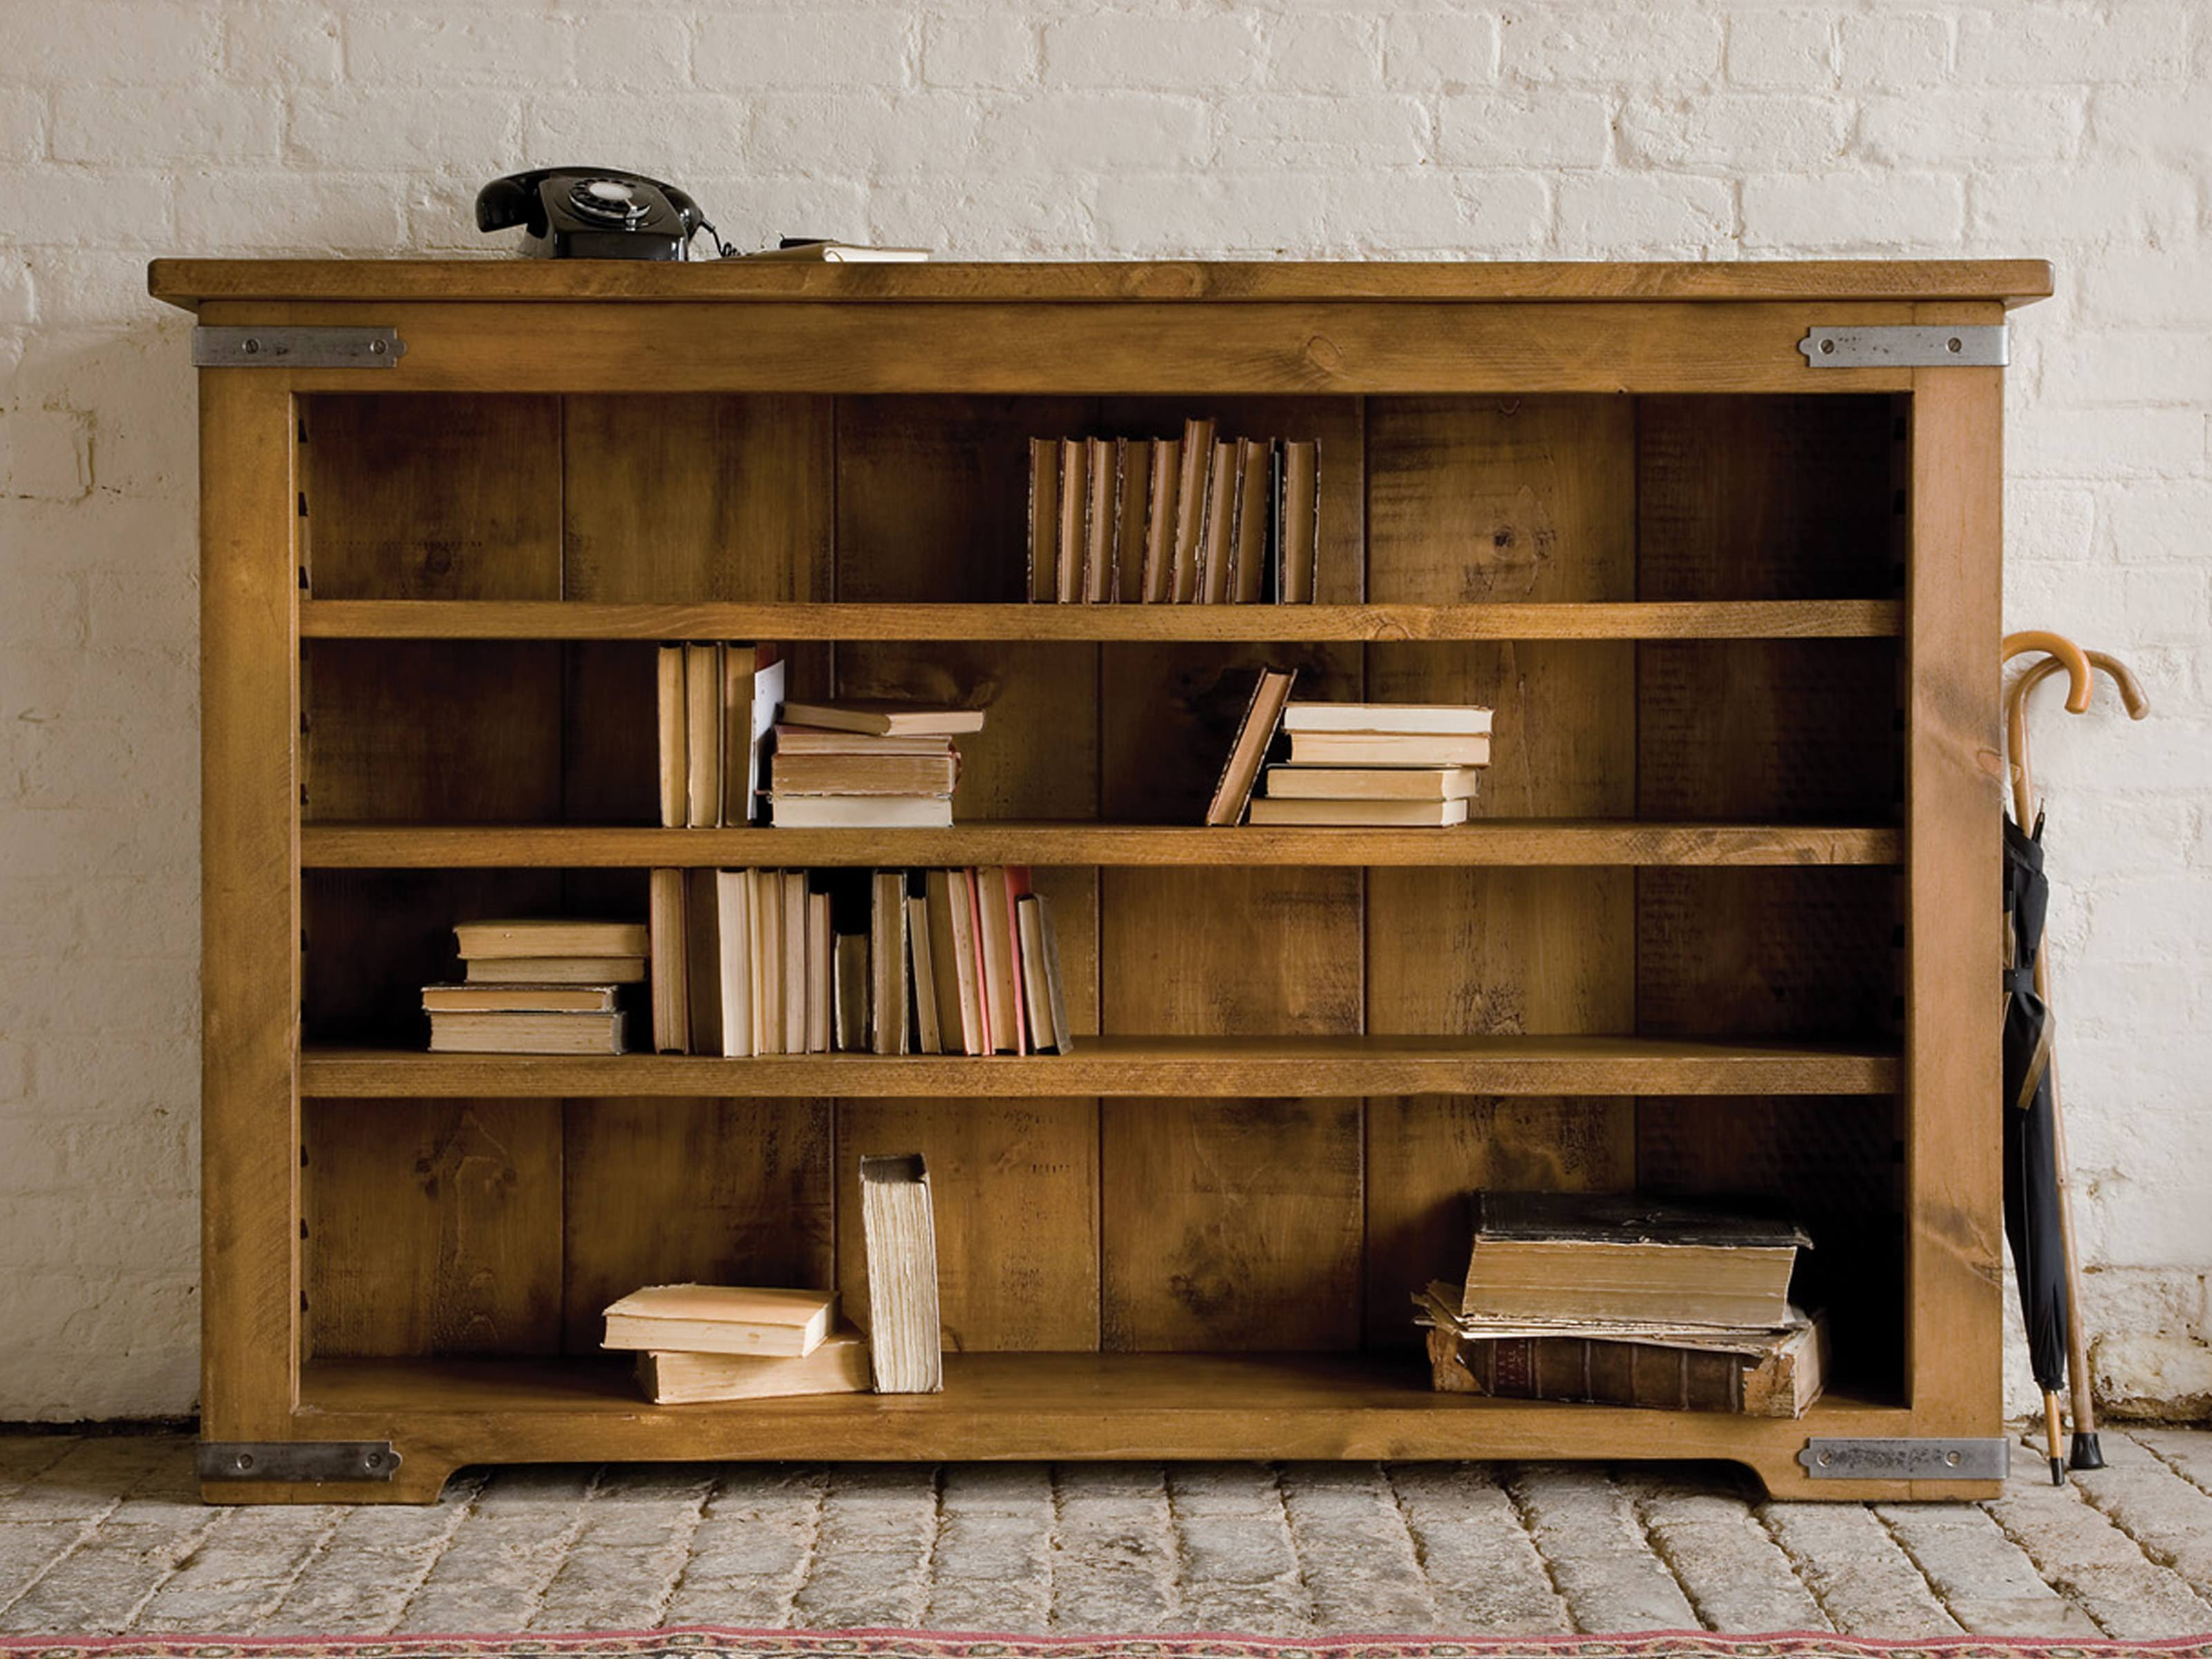 Terrific Unfinished Oak Low Bookcase Over Stones Floors And White Inside Large Wooden Bookcases (View 7 of 15)